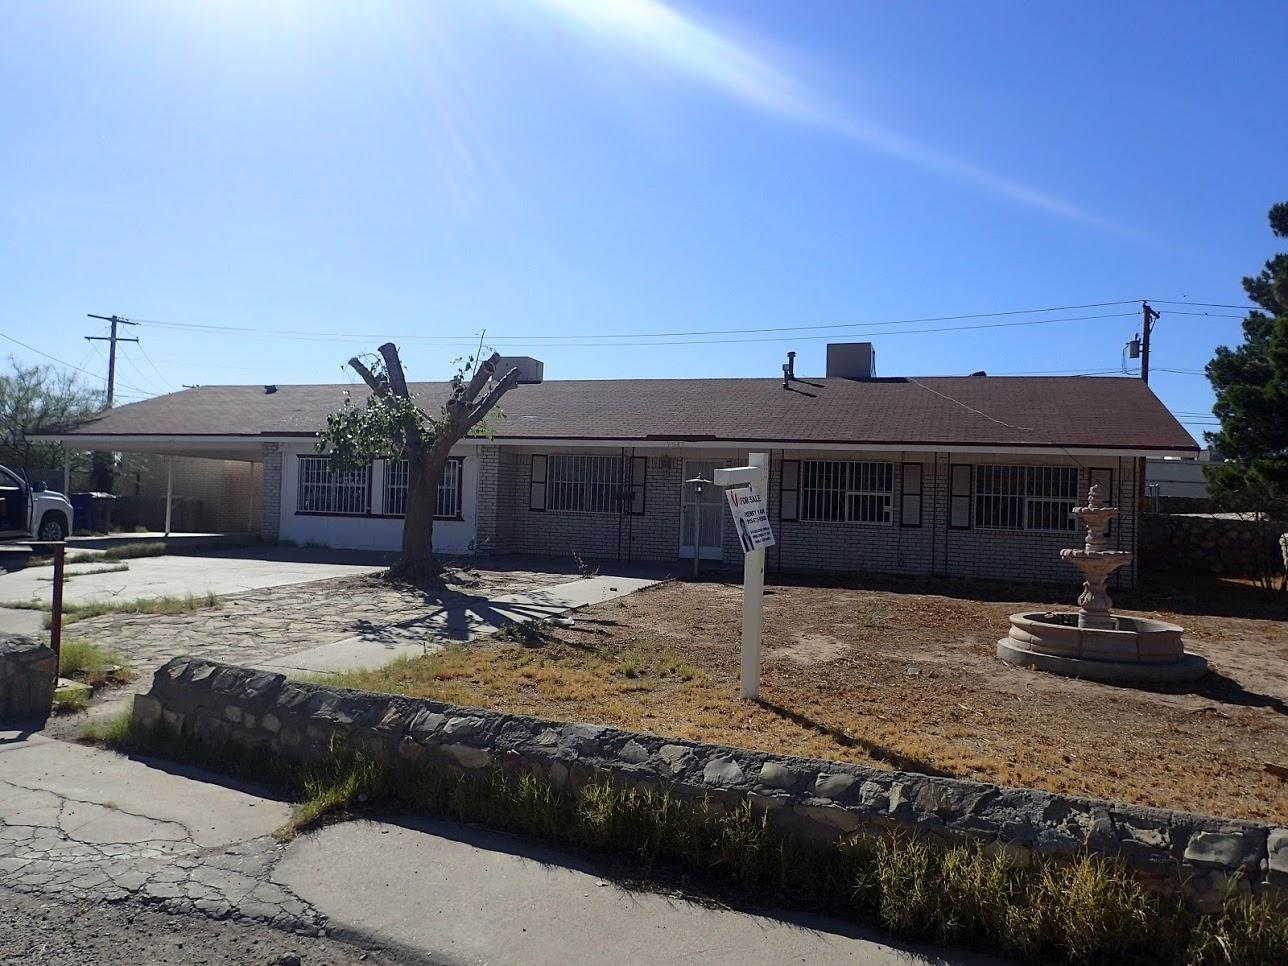 9045 COVENTRY Circle, El Paso, Texas 79907, 3 Bedrooms Bedrooms, ,2 BathroomsBathrooms,Residential Rental,For Rent,COVENTRY,806005